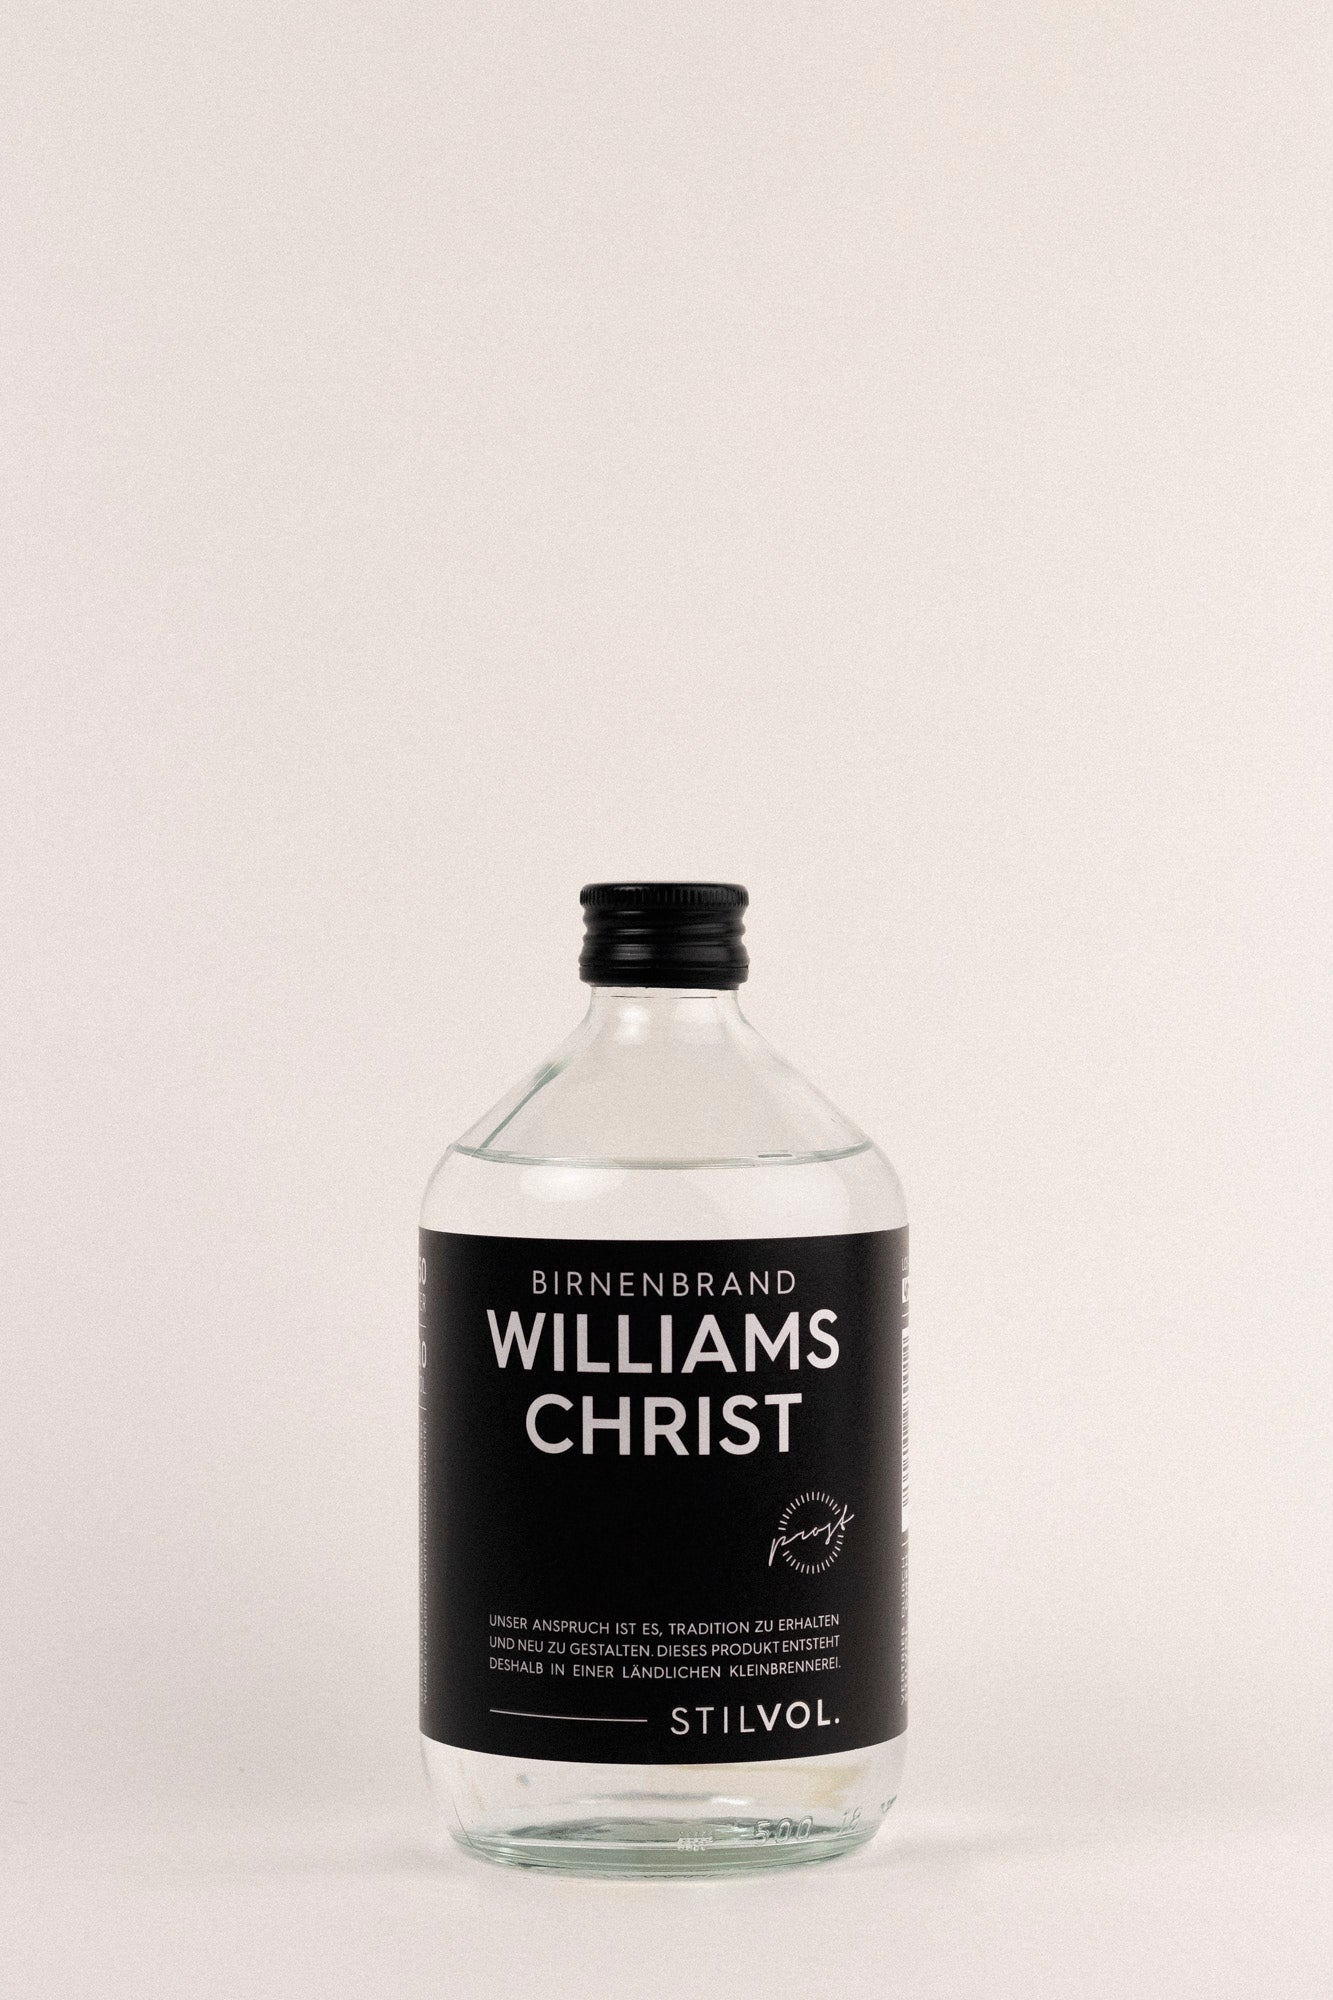 Stilvol Williams Christ Birnenbrand, 500ml